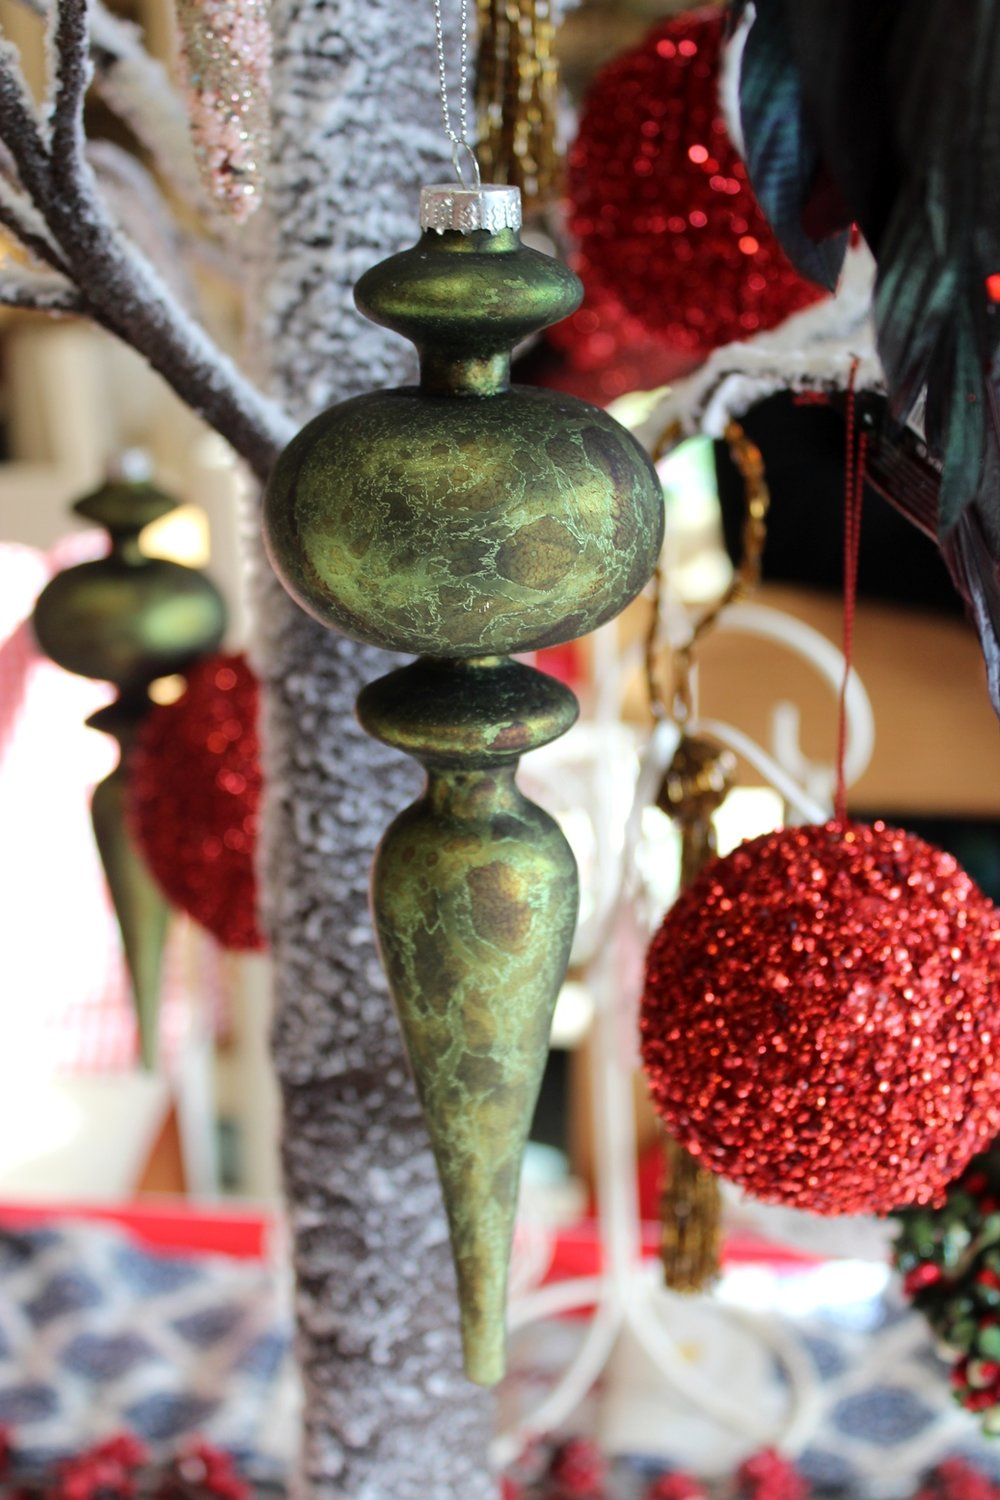 Ornament in Antique Green - €9.50